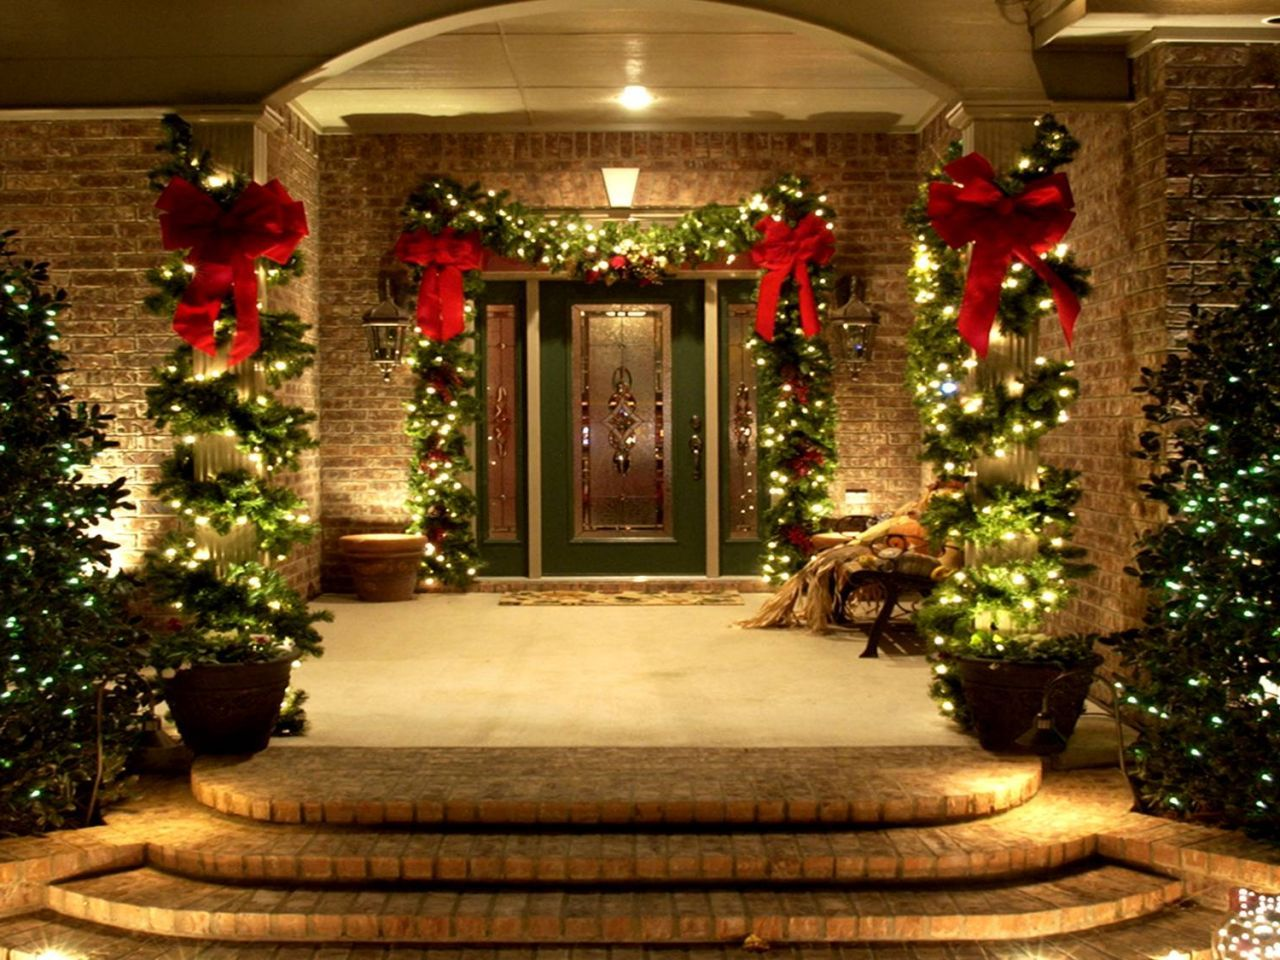 Use Of Lighting And Decorative Plants To The Outdoor For Homes - Christmas decoration outdoor ideas